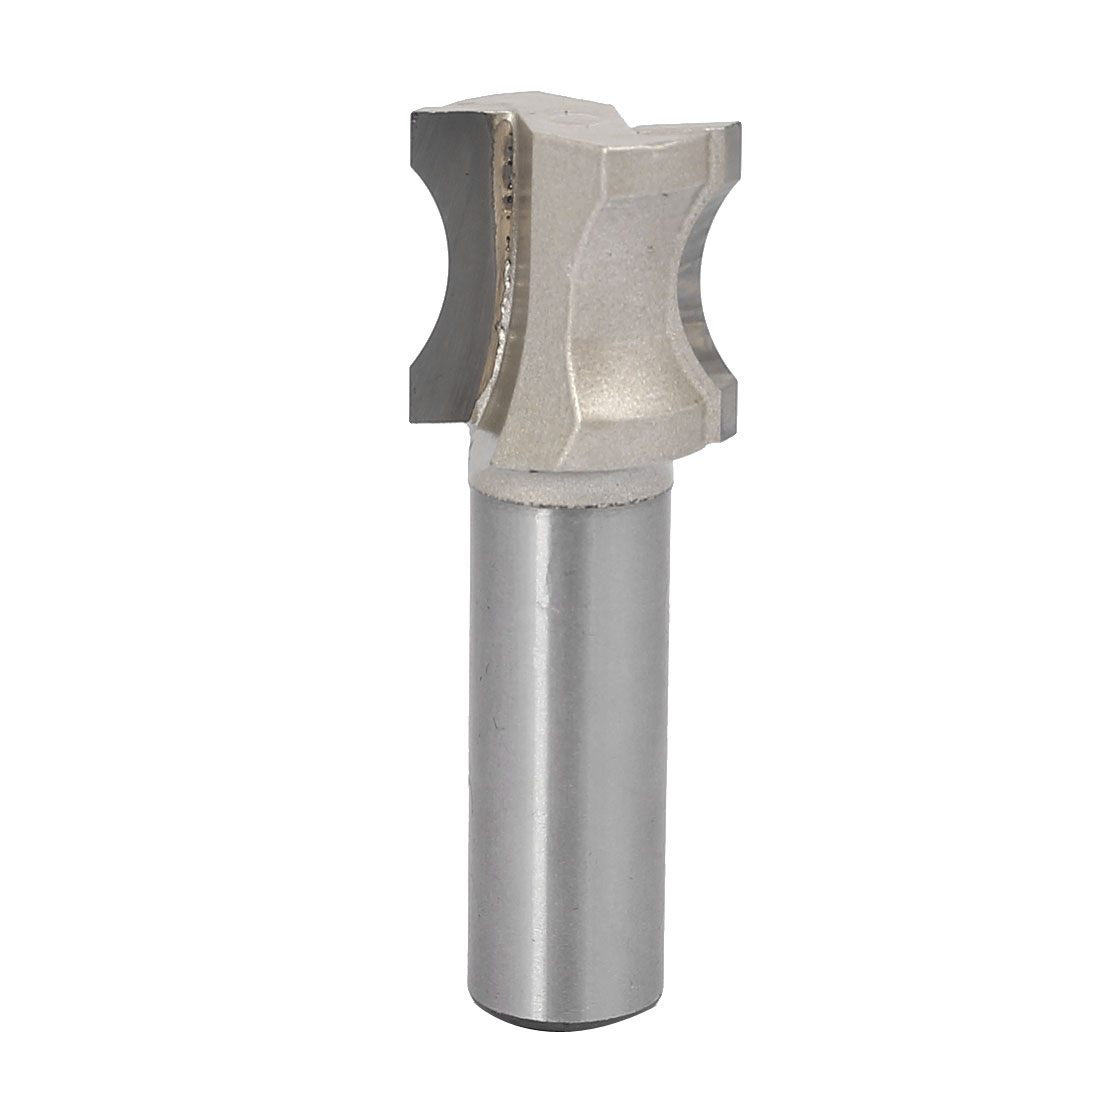 """1/2"""" Shank 1/2"""" Cutting Radian Width Double Flute Finger Nail Type Router Bit"""